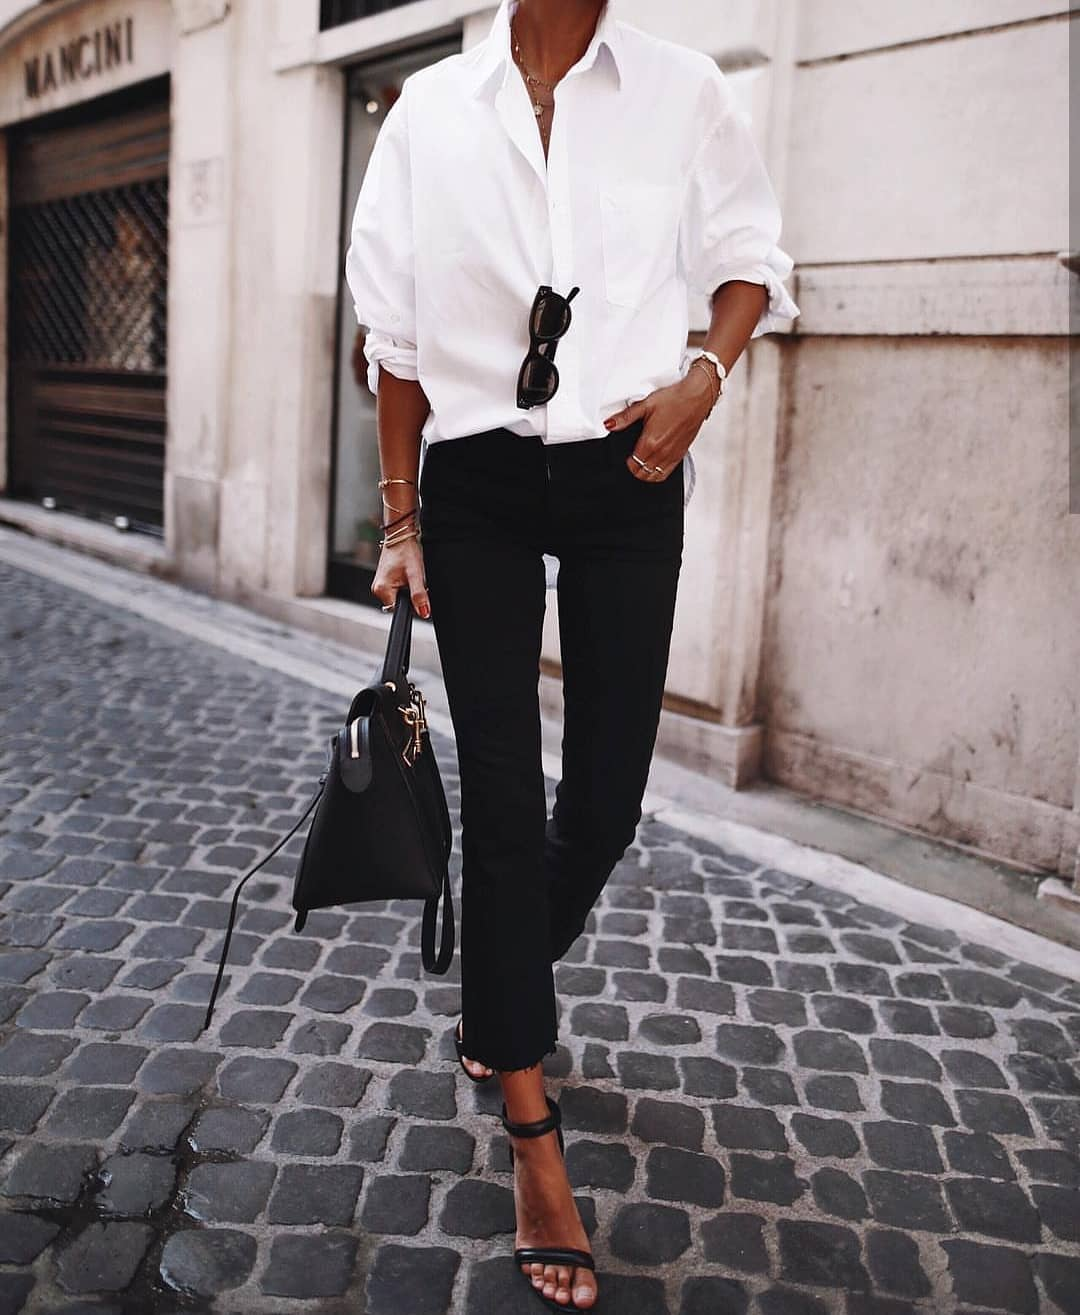 White Shirt And Black Jeans: Classic Essentials For Summer 2019